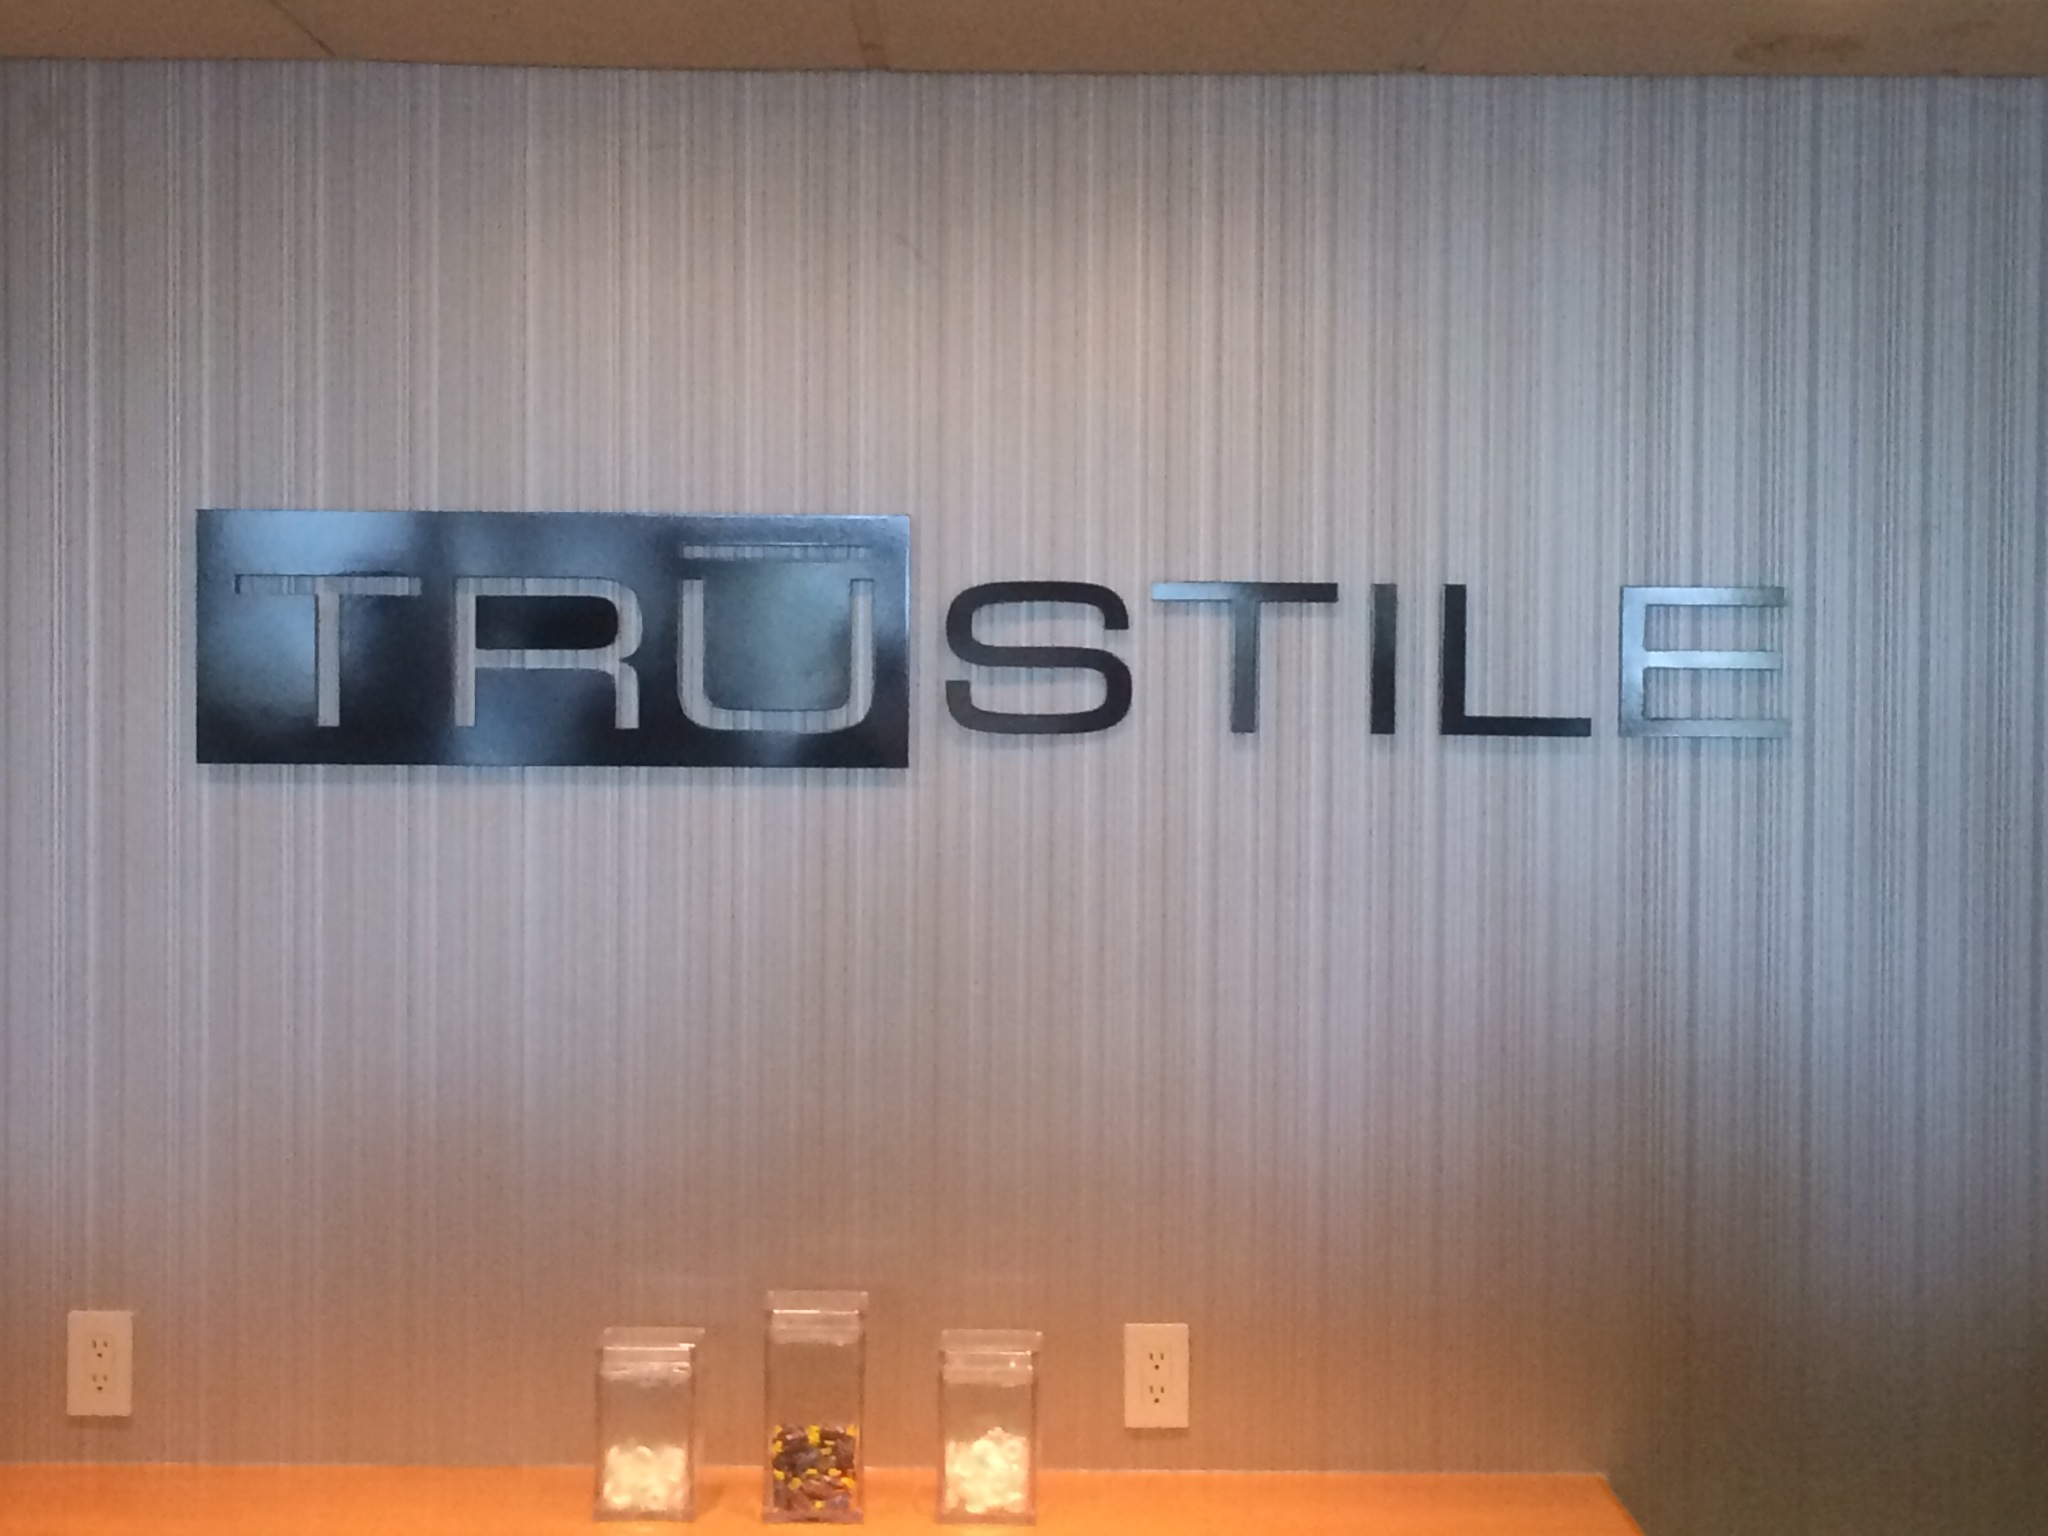 designers visiting tru stile, high-quality door companies, medium density fiberboard doors